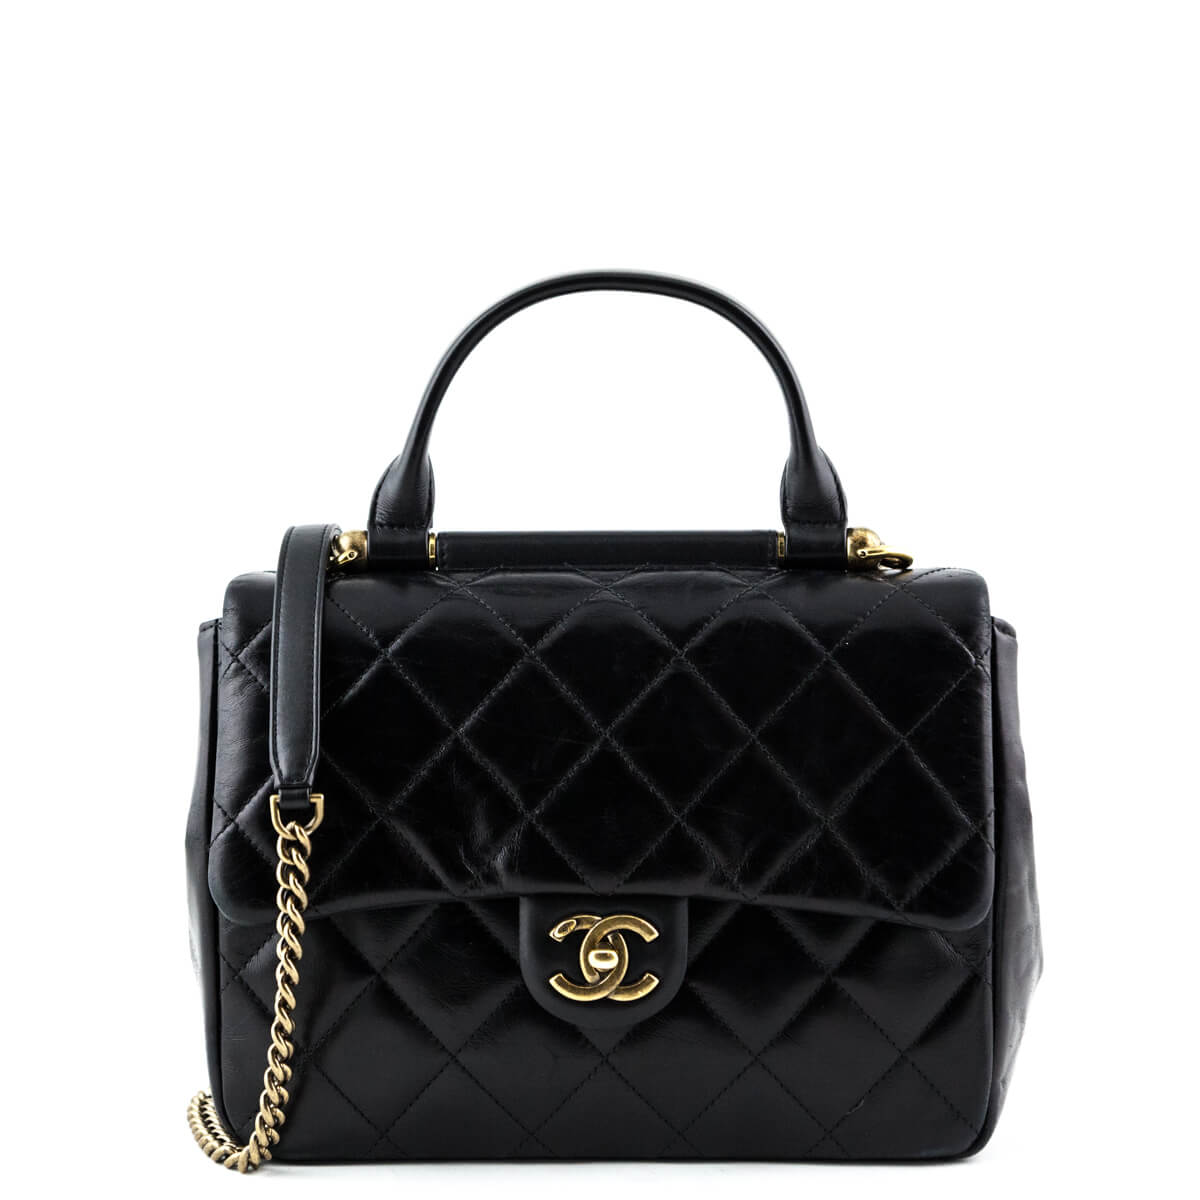 687e52ad683dff Chanel Black Aged Calfskin Small Flap Bag with Top Handle GHW - LOVE that  BAG ...